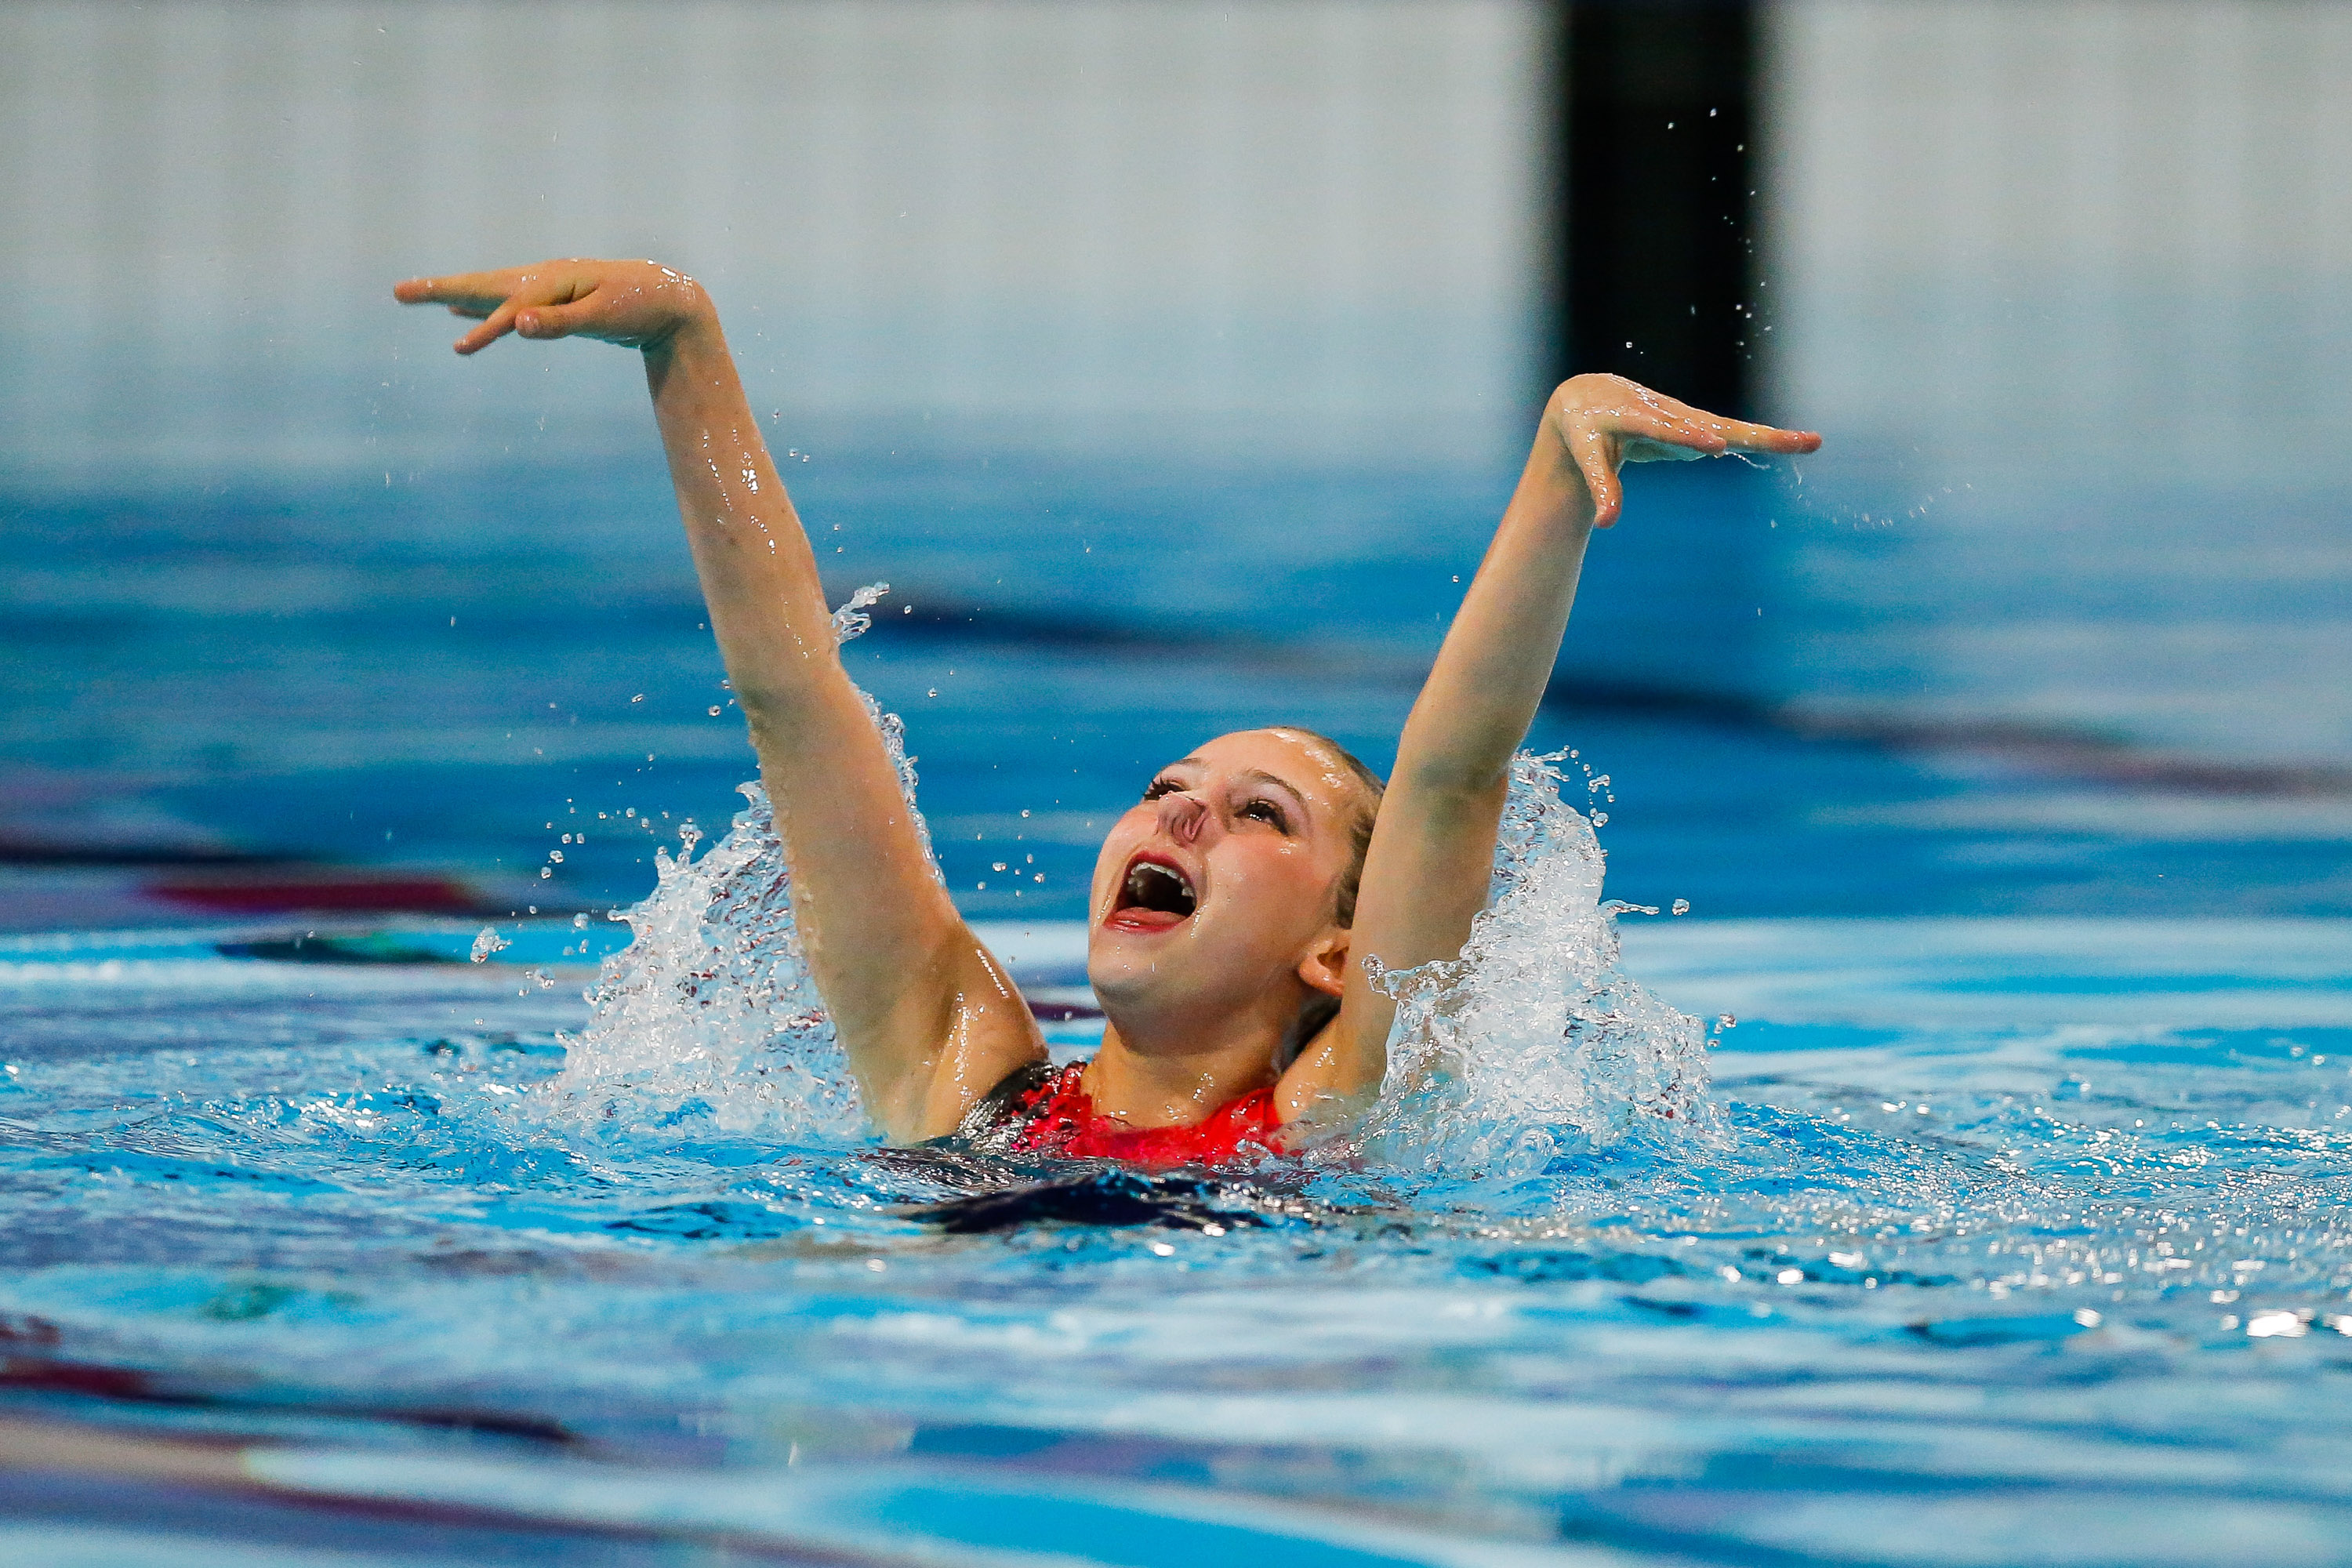 Swim England Synchronised Swimming Coach